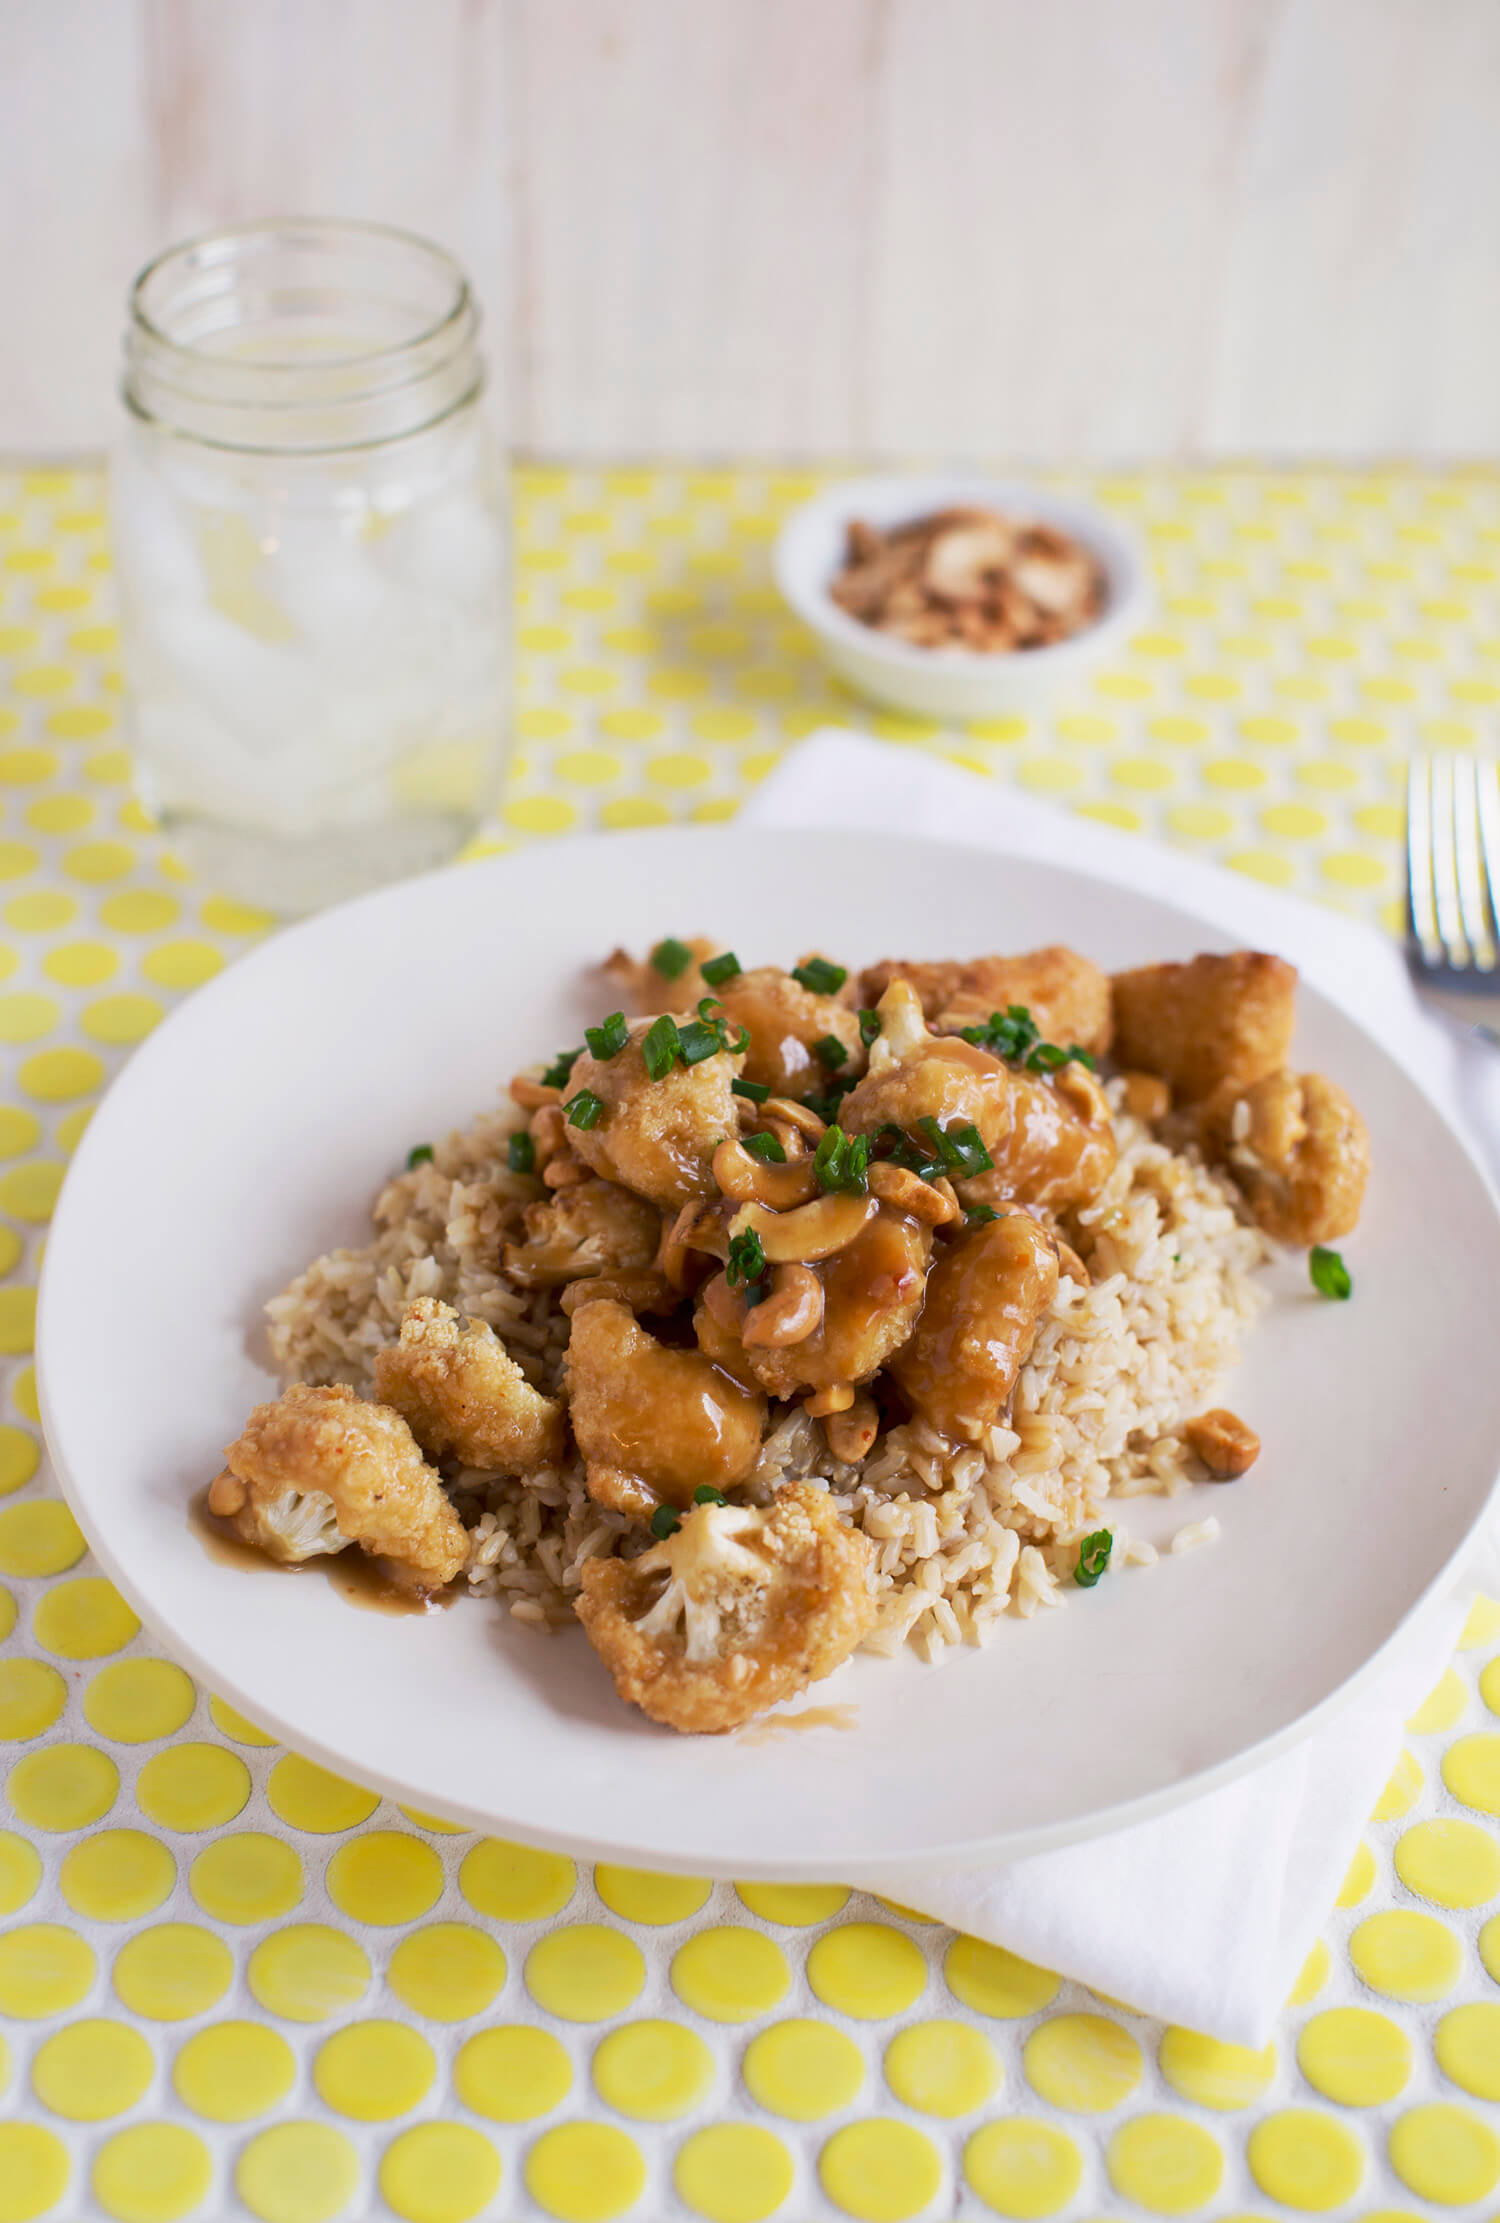 Hungry? Try This Amazing Cashew Curry Cauliflower Recipe